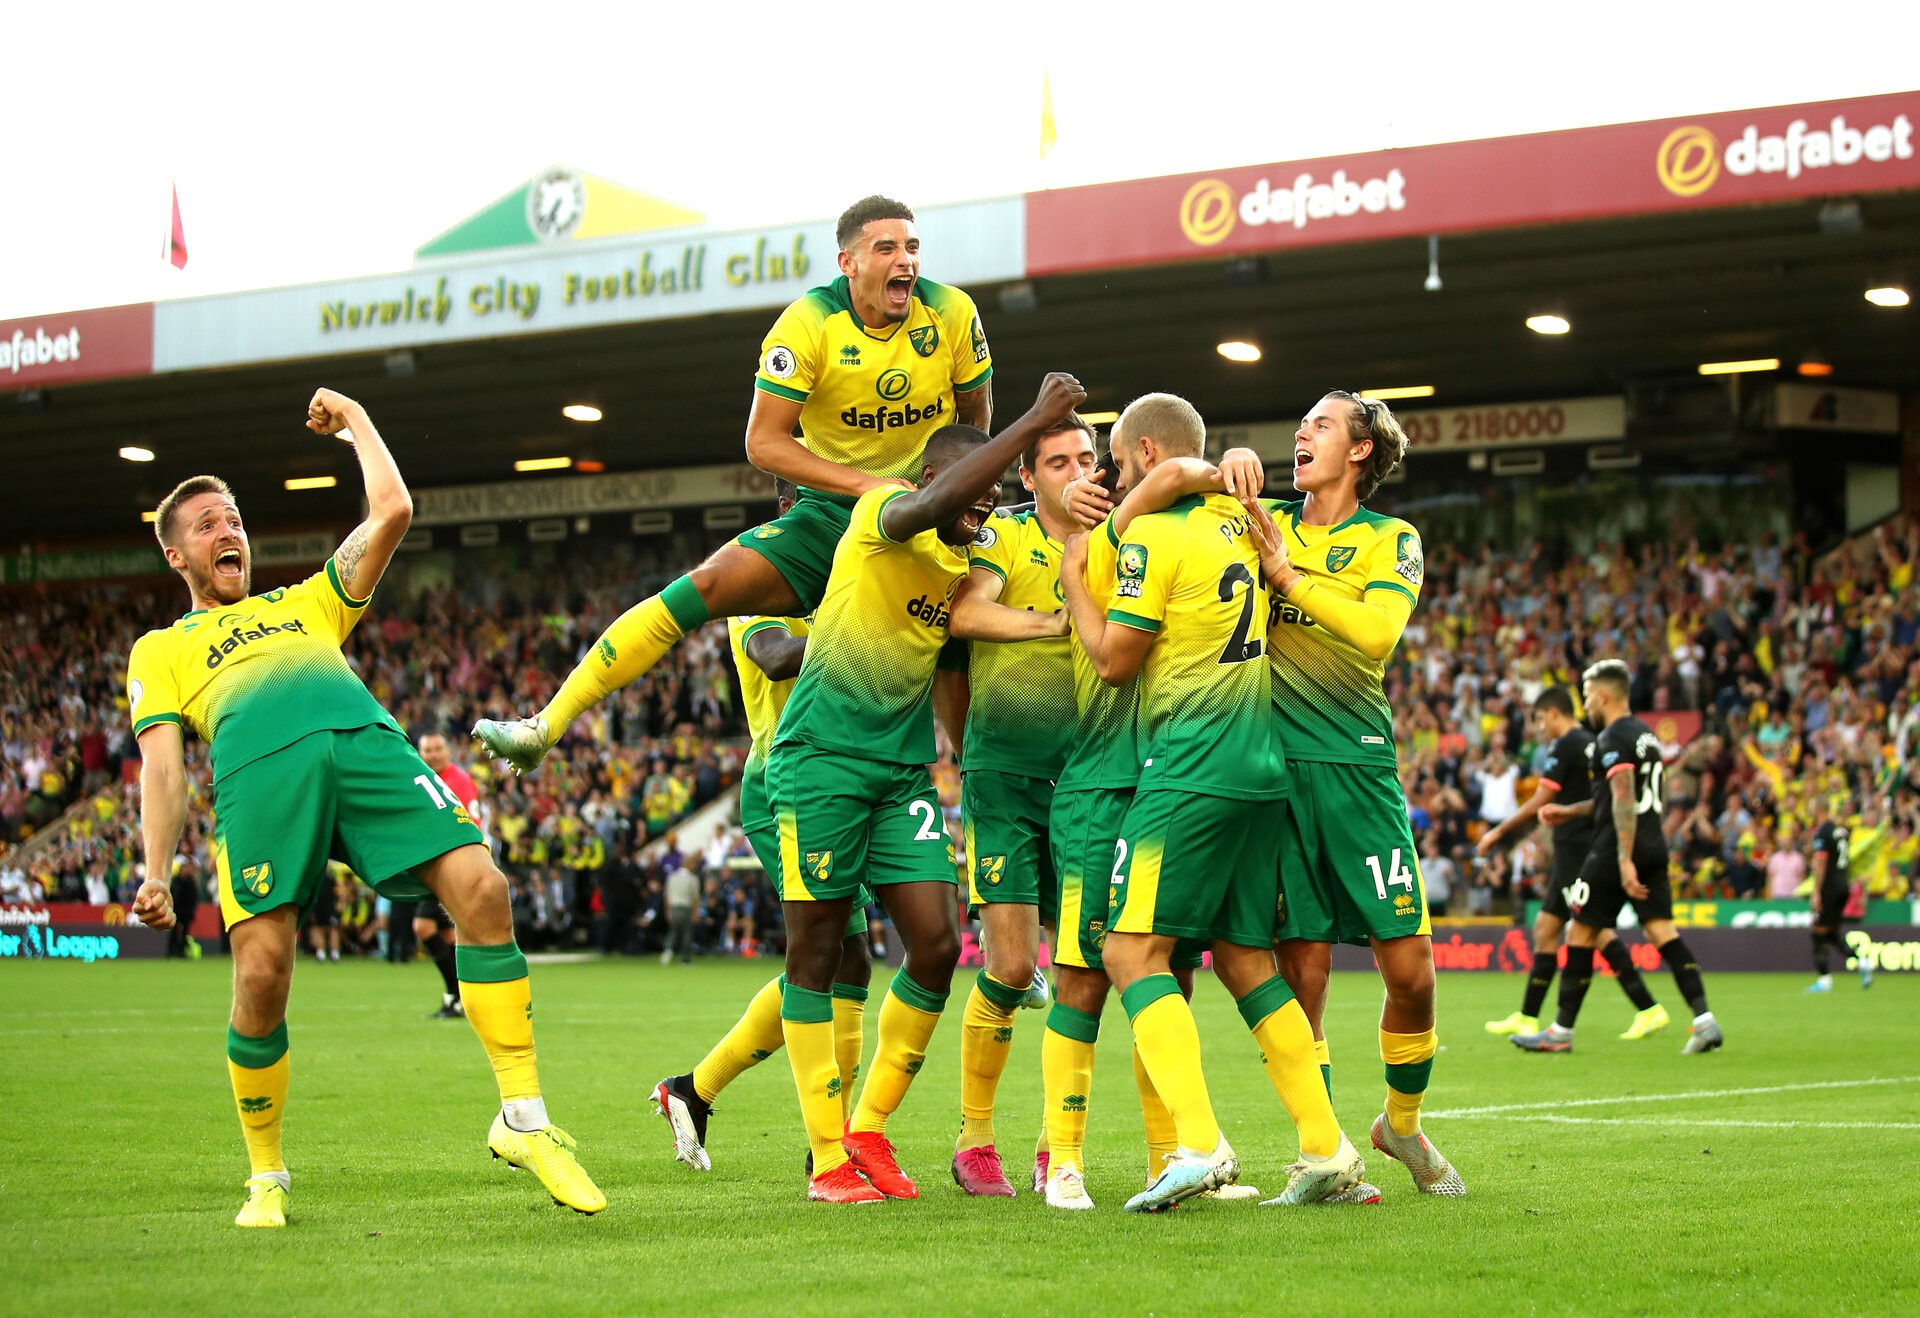 NORWICH, ENGLAND - SEPTEMBER 14: Teemu Pukki of Norwich City celebrates with teammates after scoring his team's third goal during the Premier League match between Norwich City and Manchester City at Carrow Road on September 14, 2019 in Norwich, United Kingdom. (Photo by Marc Atkins/Getty Images)